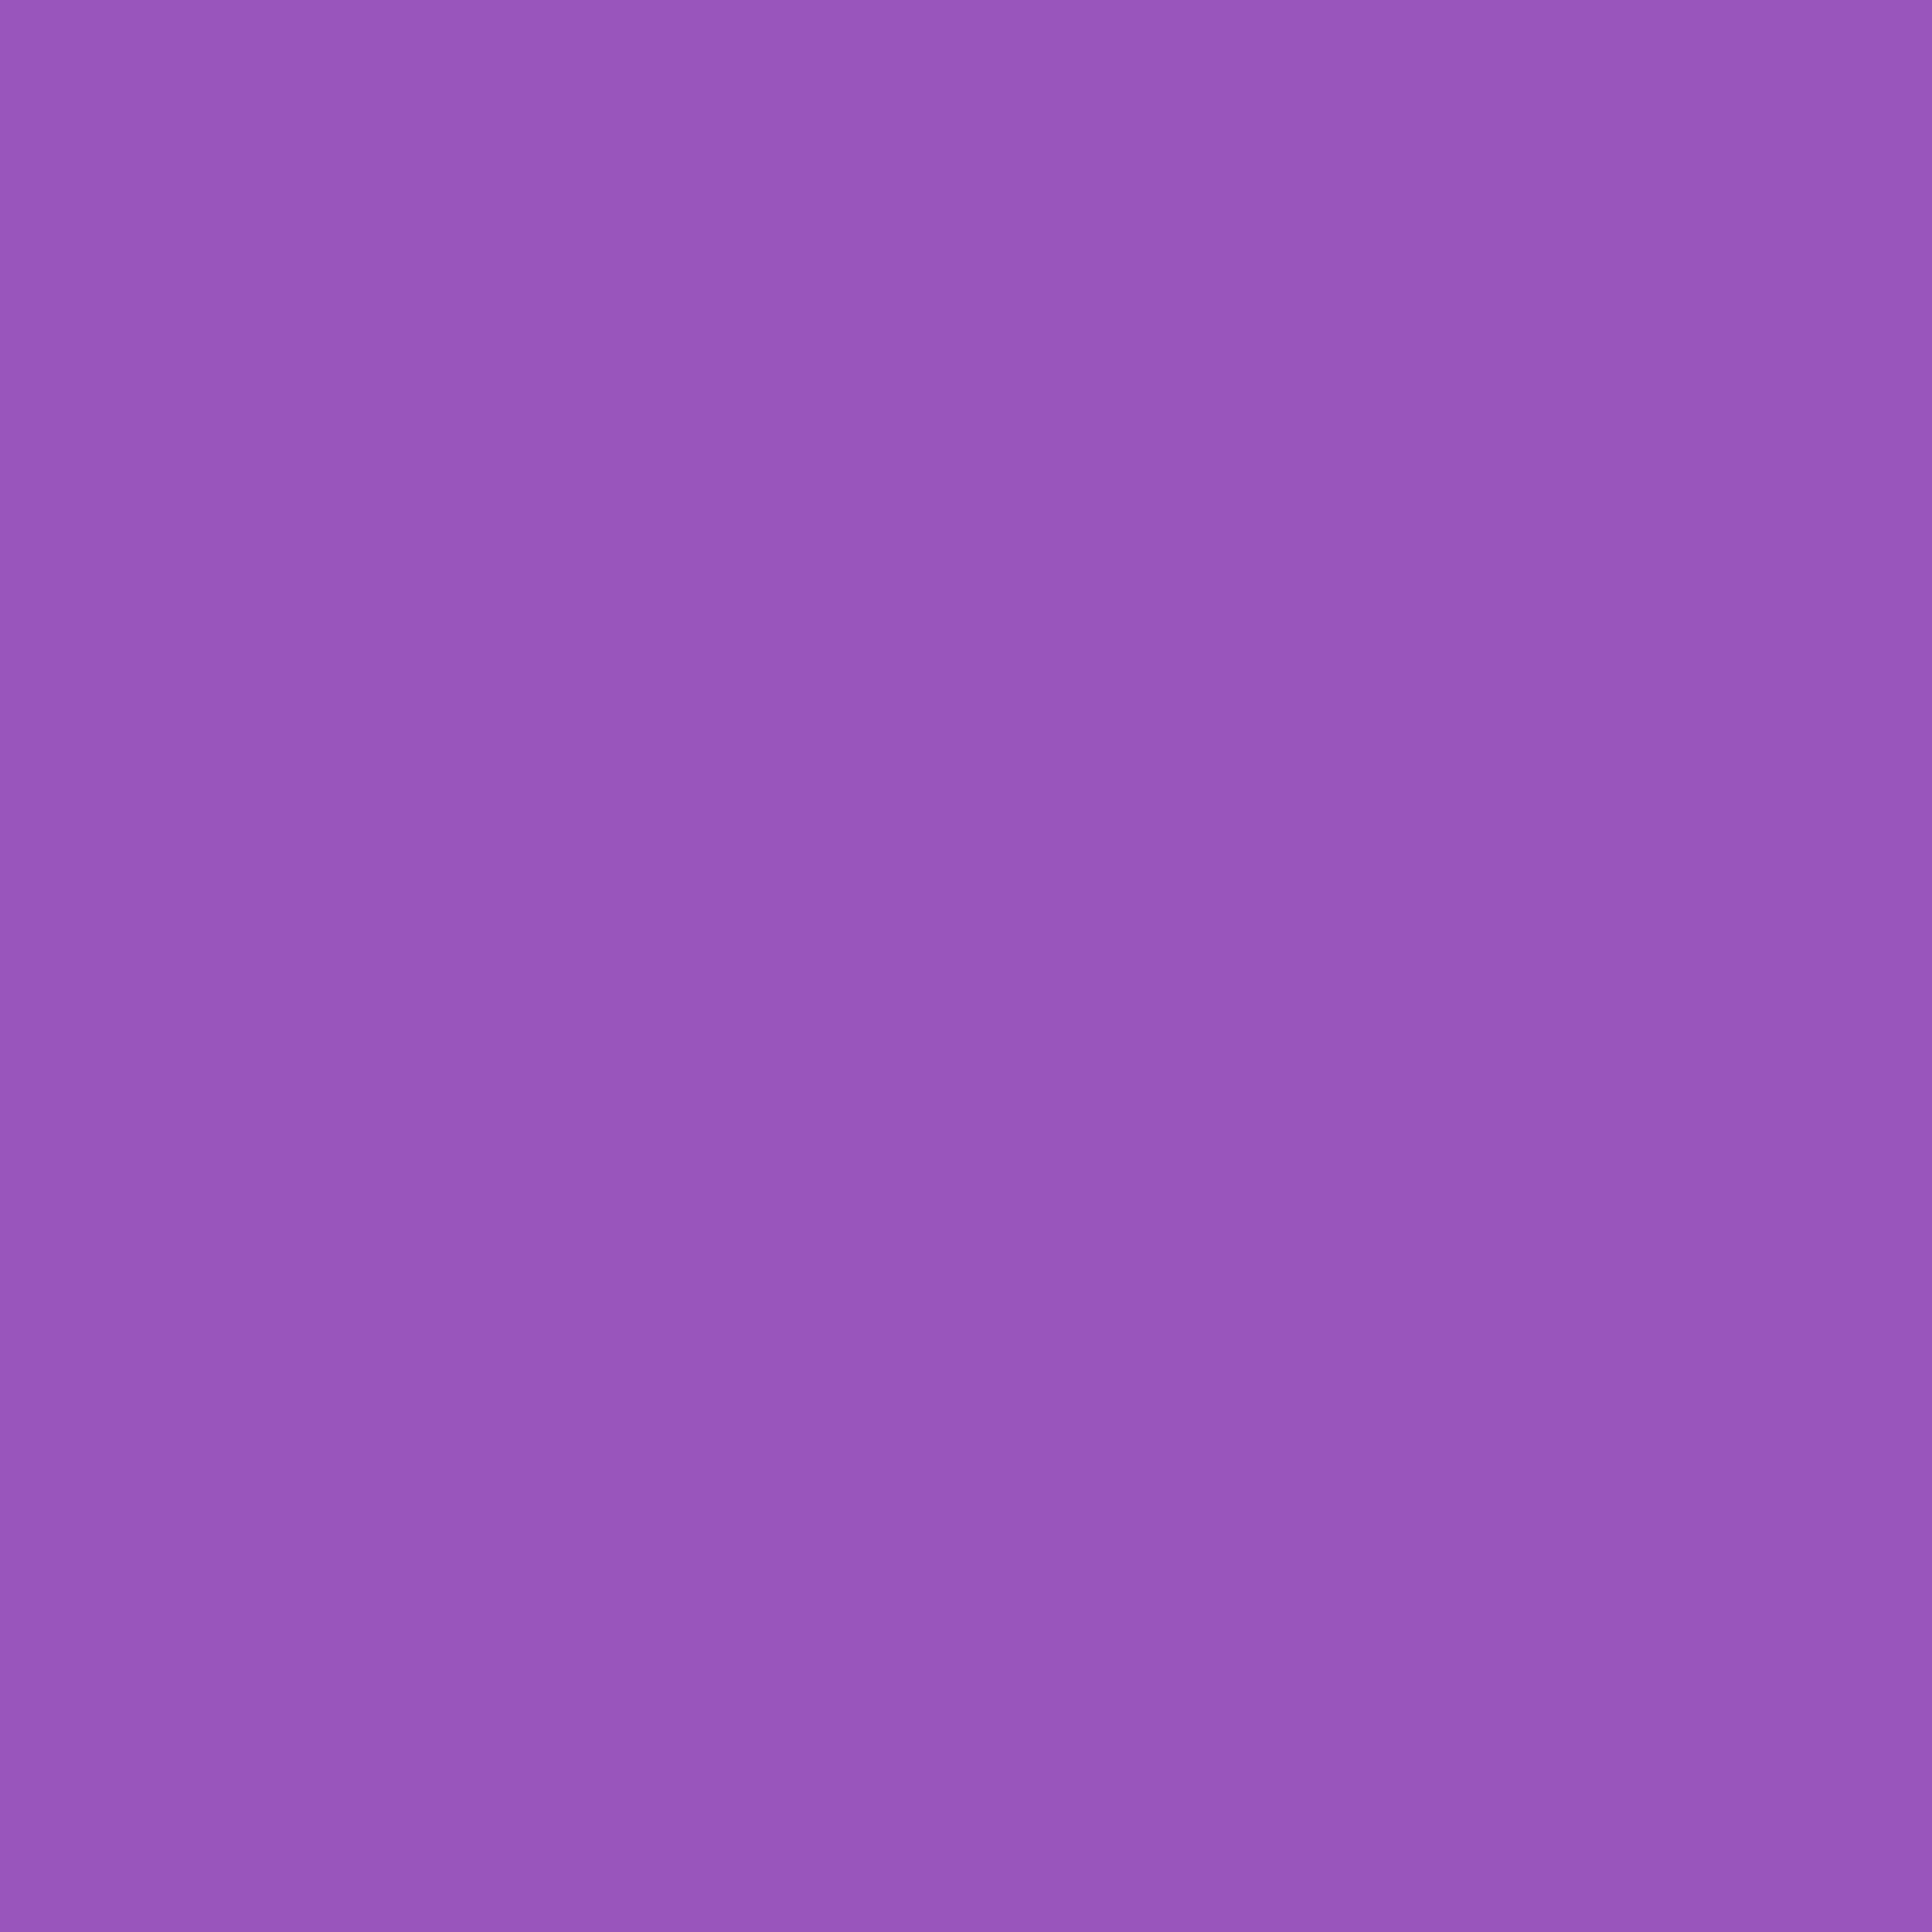 2048x2048 Deep Lilac Solid Color Background